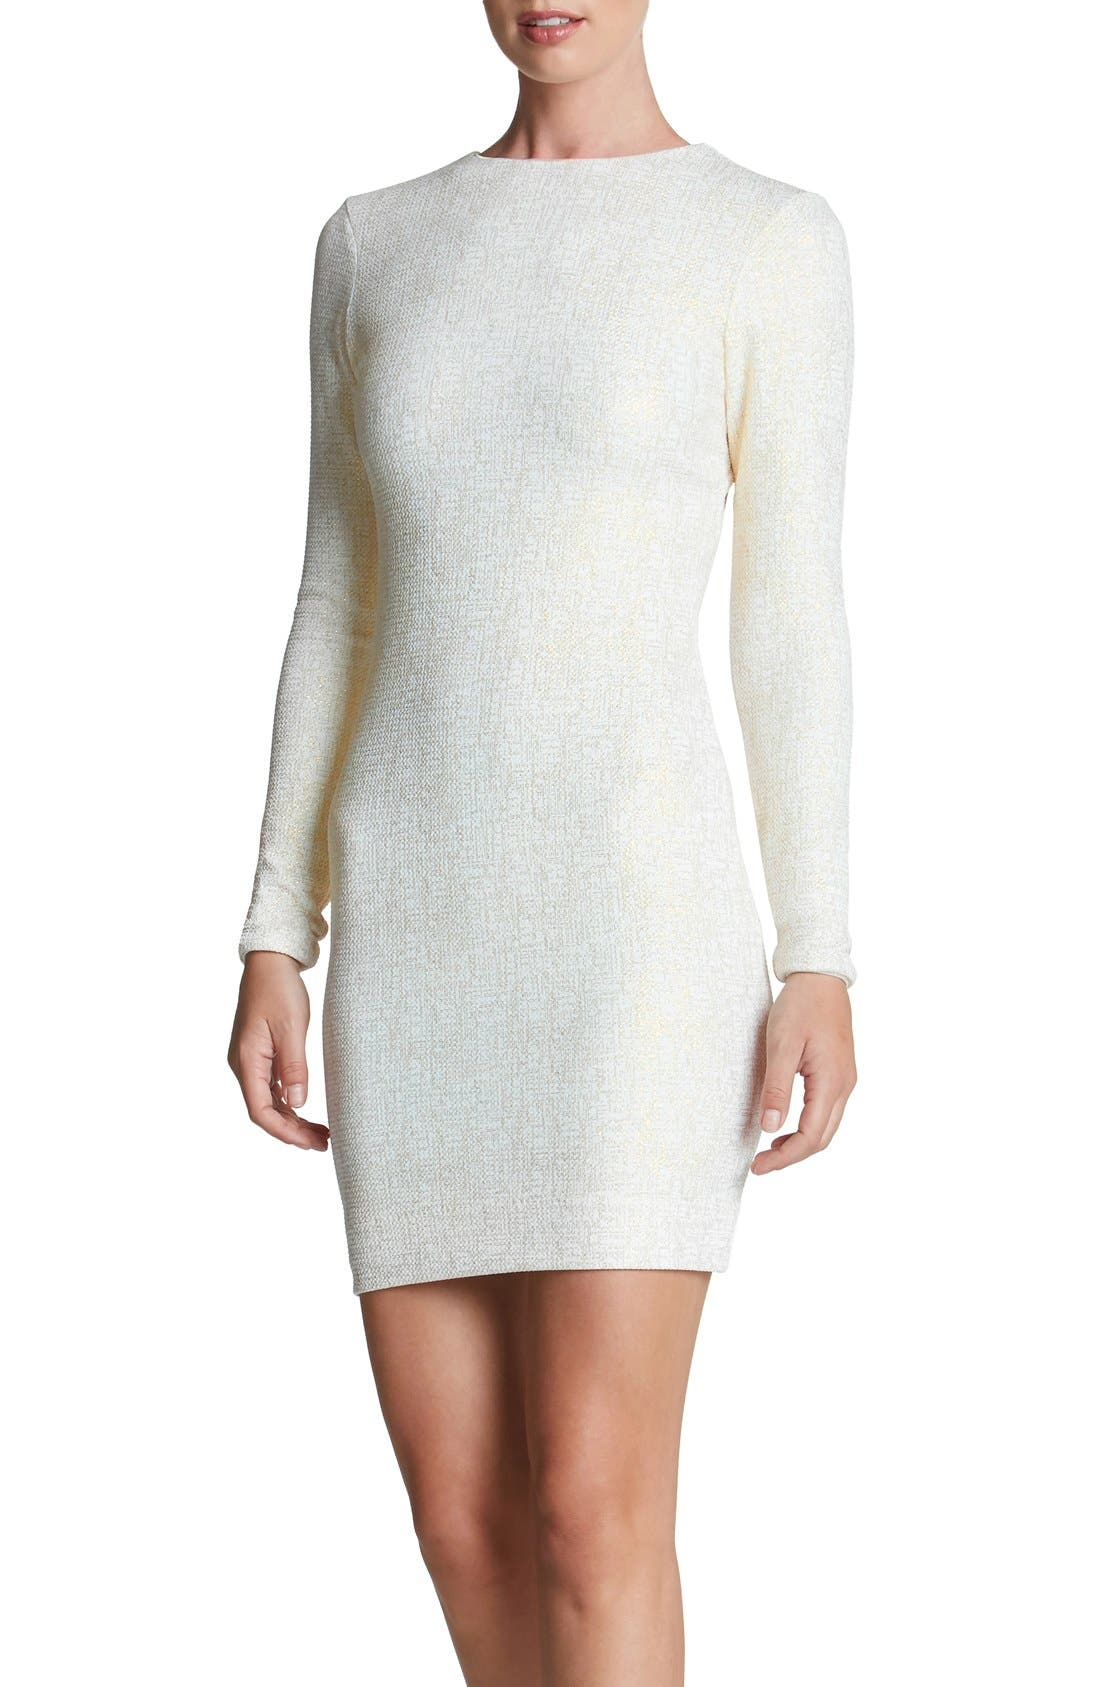 Alternate Image 1 Selected - Dress the Population Tori Body-Con Dress